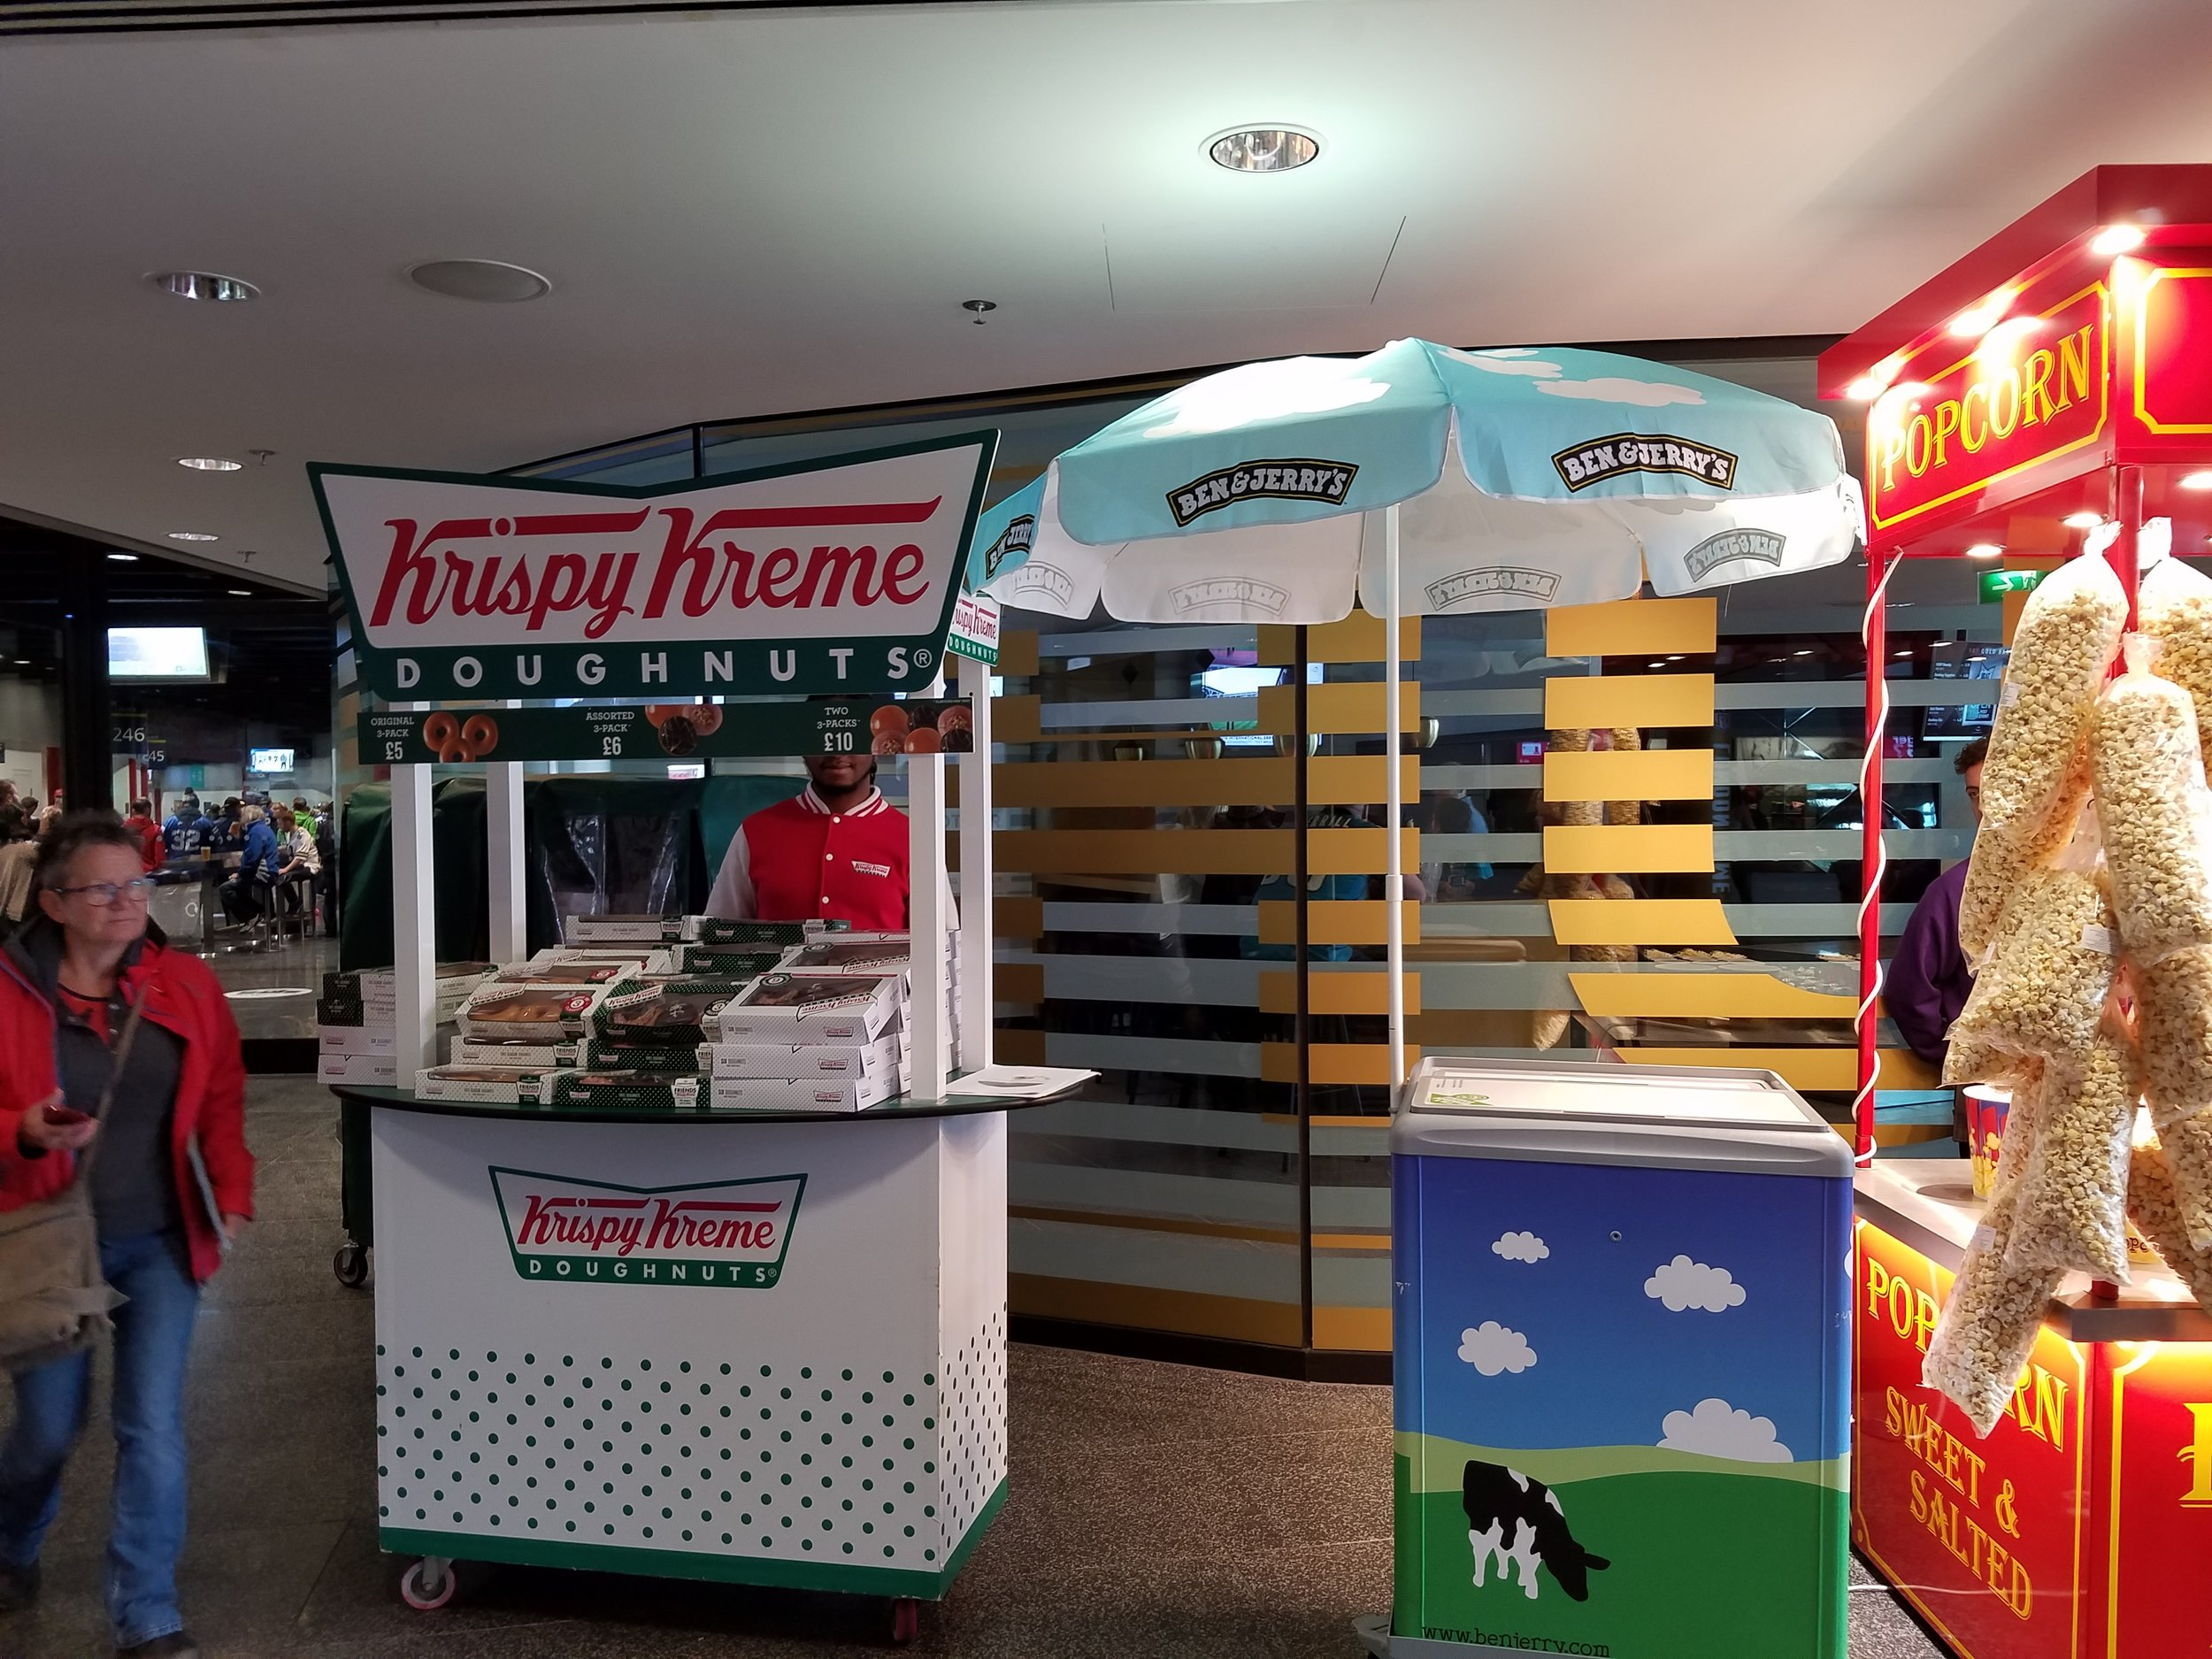 You can never go wrong with a Krispy Kreme doughnut, Ben & Jerry's ice cream...or both!